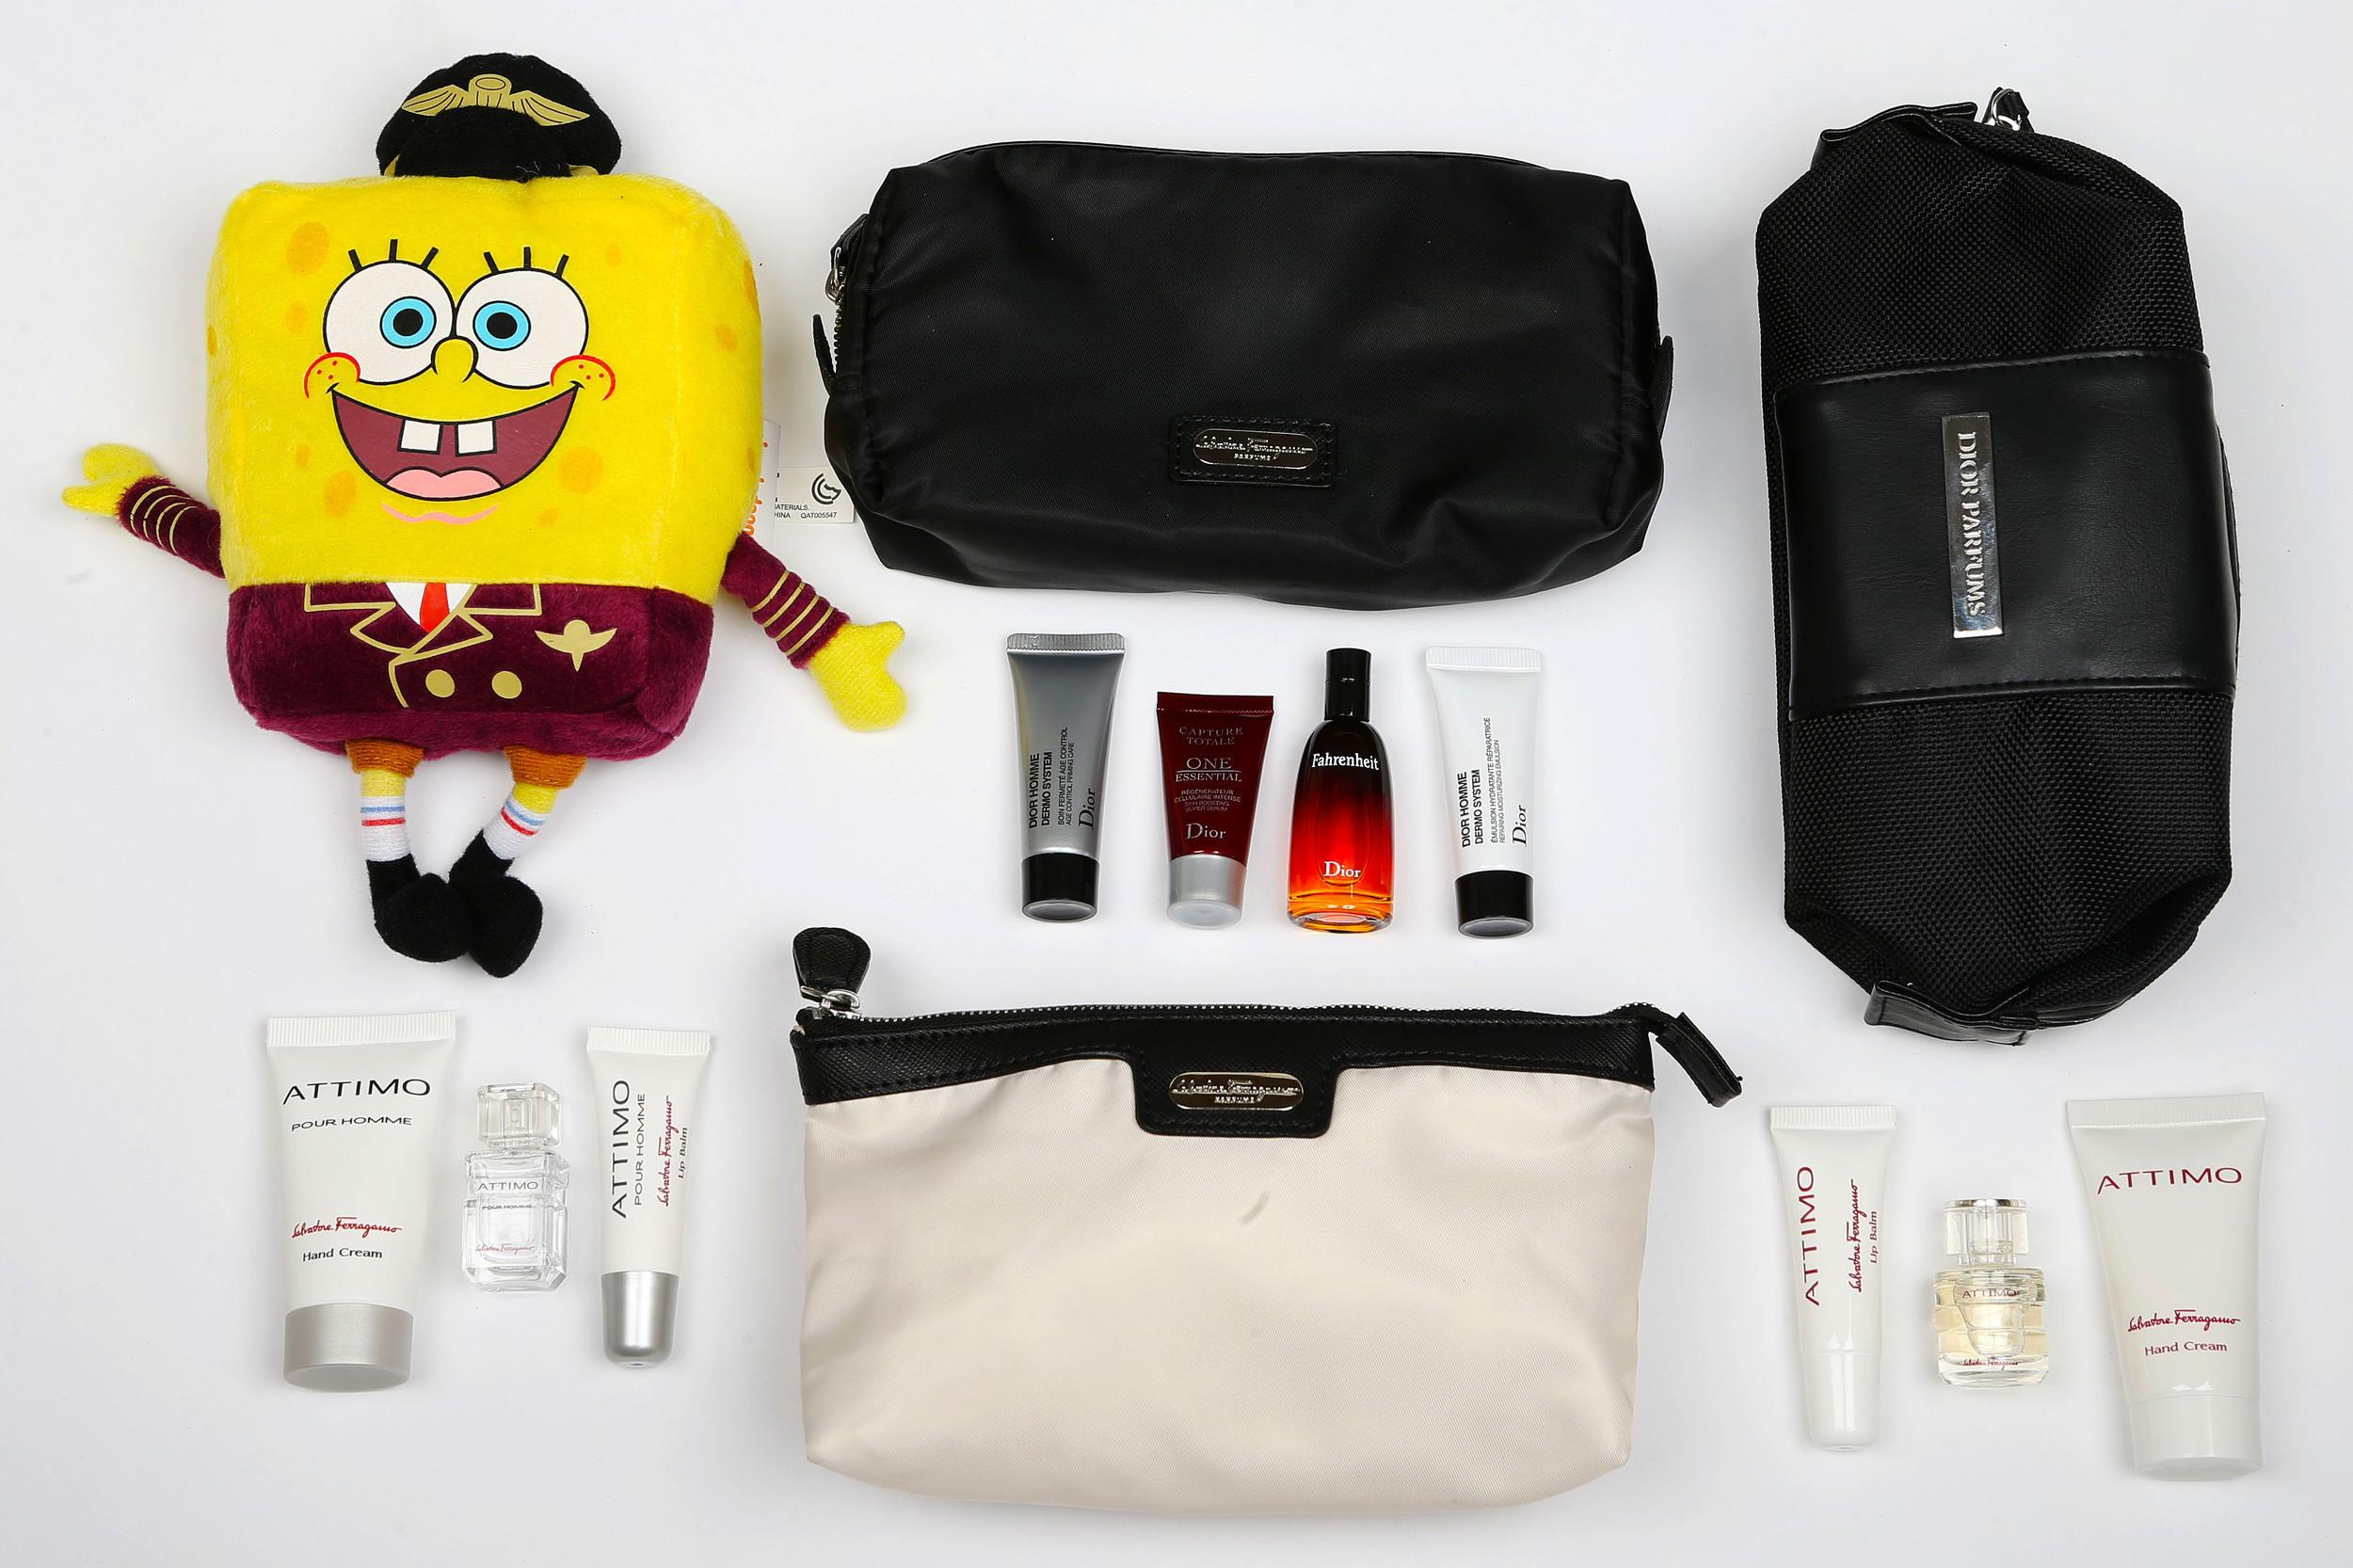 <p><strong>What do you get?</strong> First class - In a Dior-branded black bag, for men, there is Dior Fahrenheit Eau De Toilette, serum and moisturiser. For women, the luxury goods are Dior J'adore Eau de Parfum products.<br /> Business class - Male and female business travellers receive Salvatore Ferragamo Attimo products: Hand cream, lip balm, and perfume.<strong> </strong><br /> <strong>Best bit of the kit?</strong>The ultra-luxe Dior and Ferragamo products.</p>